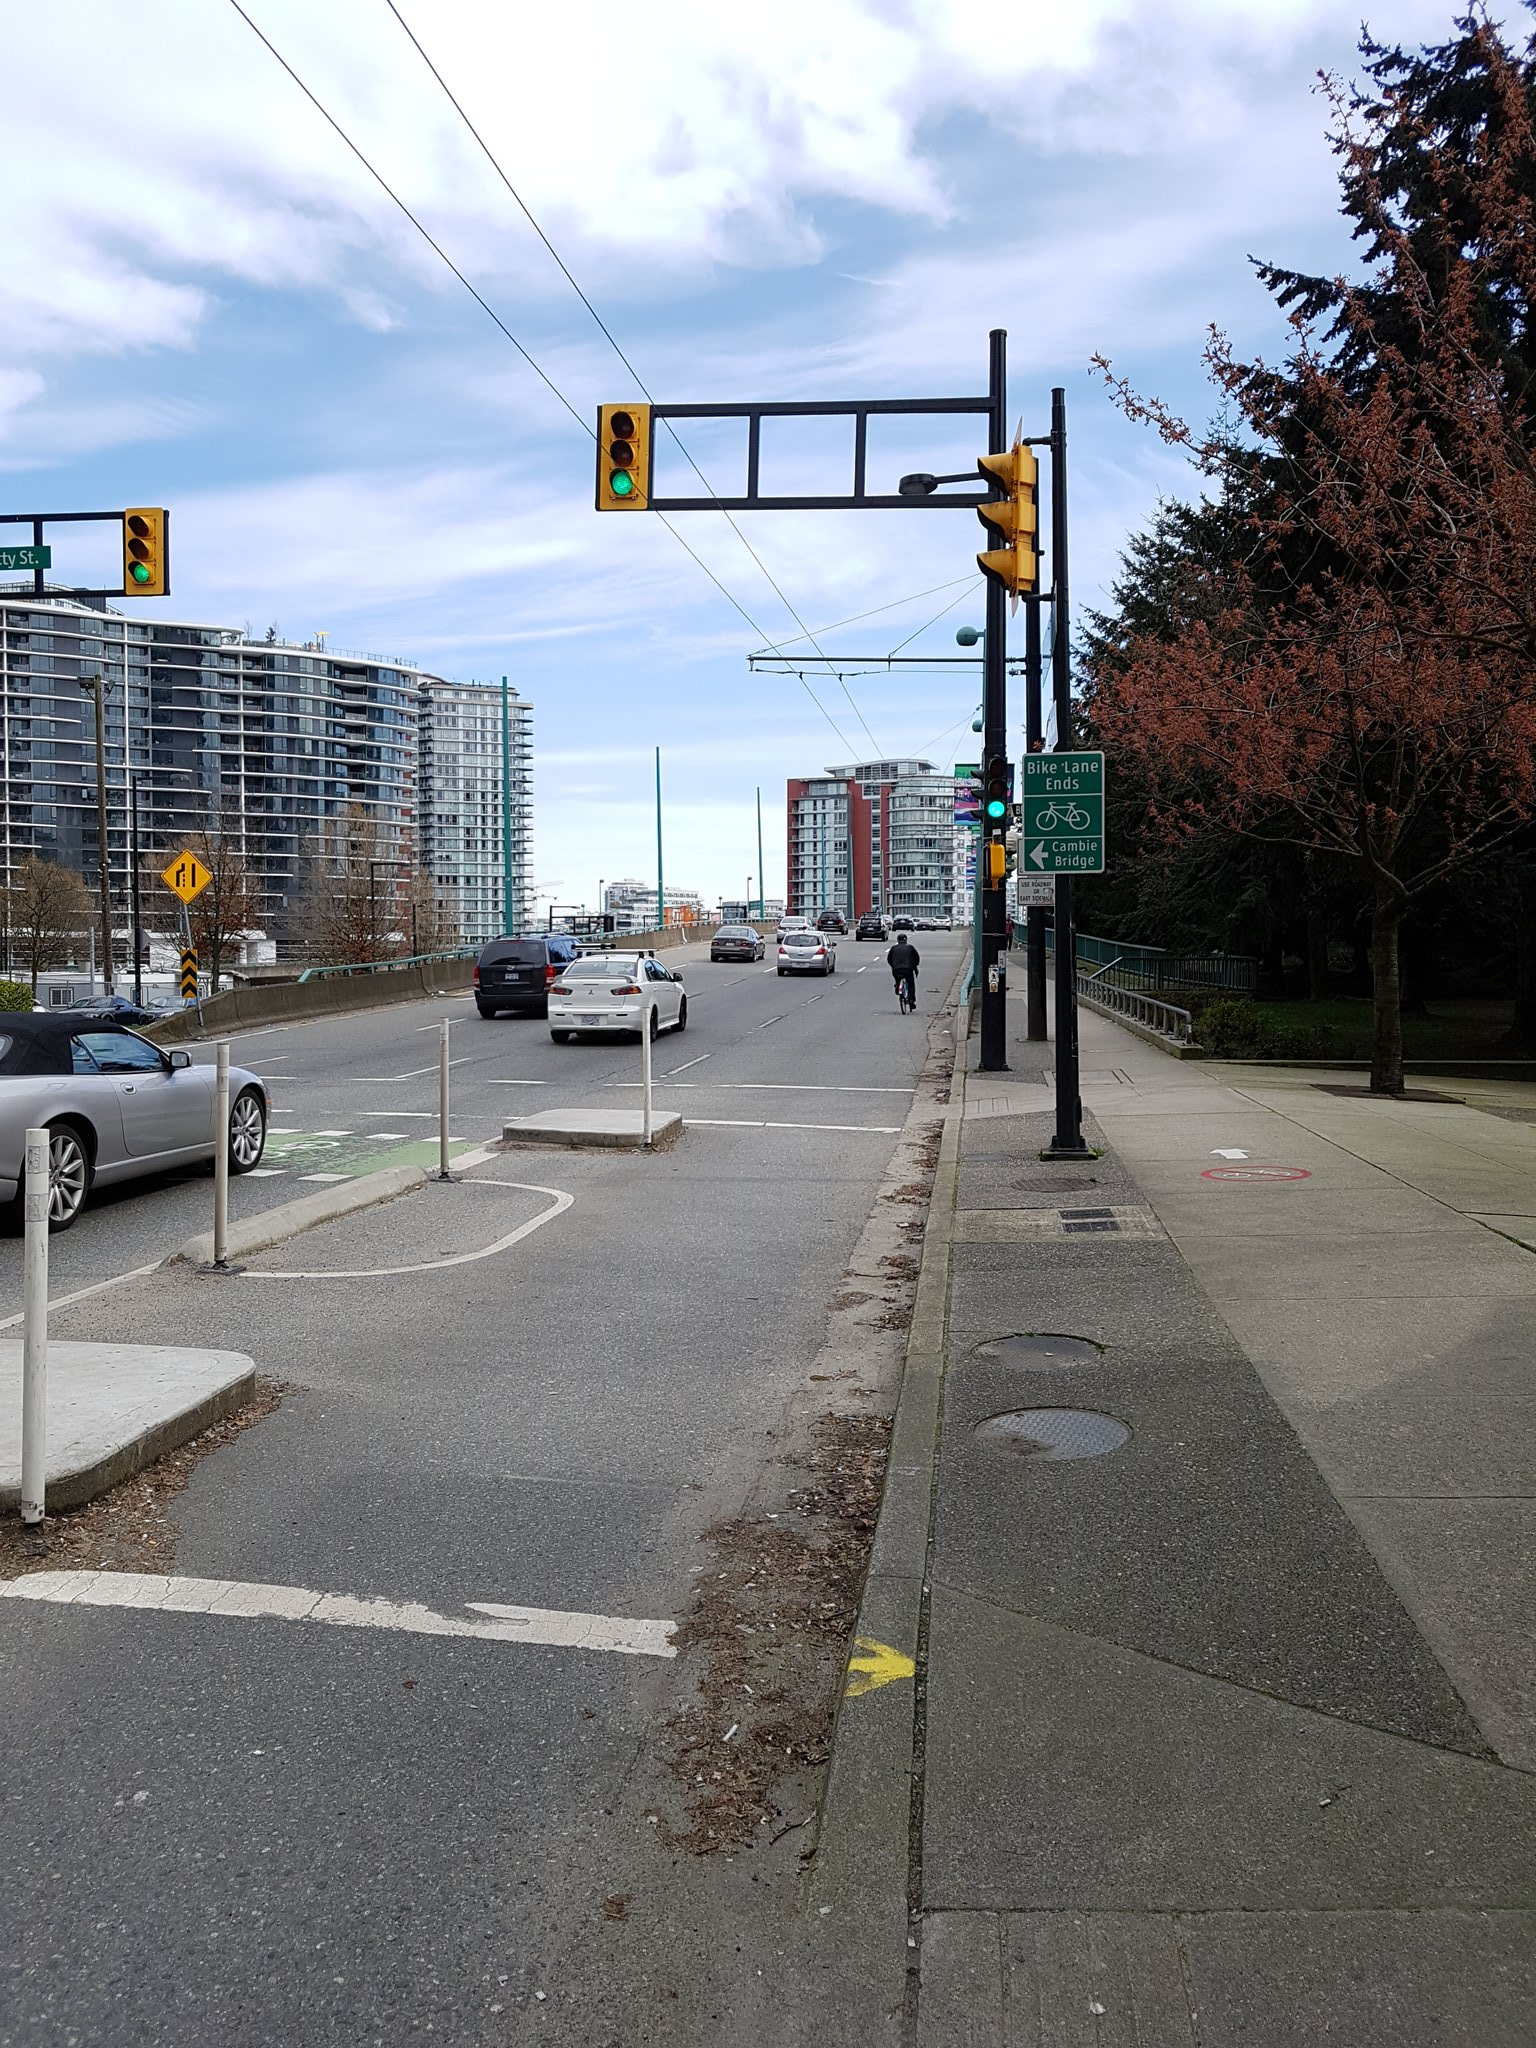 Sometimes quick & cheap means compromise - end of new lane on Nelson St funnels people onto Granville Bridge into shared lane #yyjbike https://t.co/4eAWXOxXB5